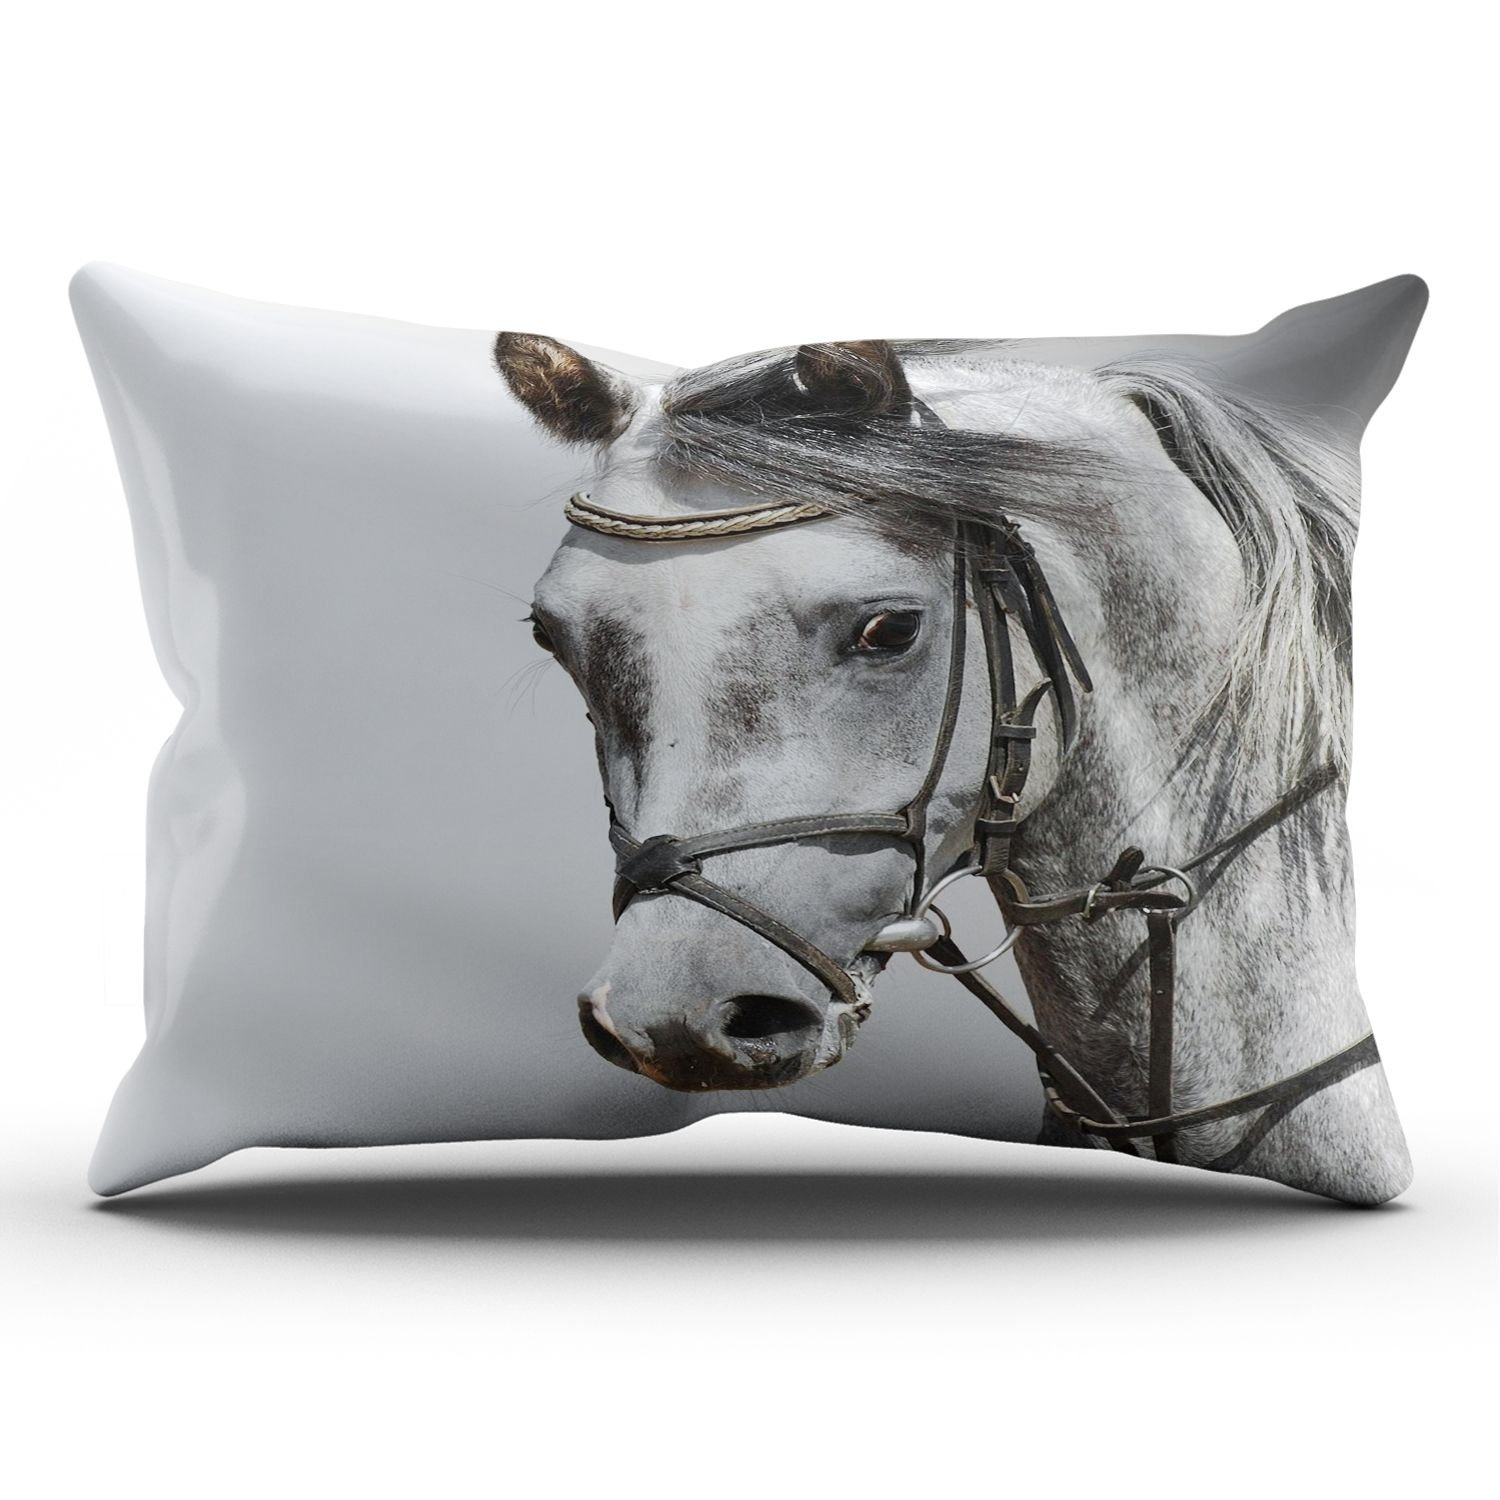 KEIBIKE Personalized Animals Horse Mane Color Head Rectangle Decorative Pillowcases Vintage Zippered King Pillow Covers Cases 20x36 Inches One Sided